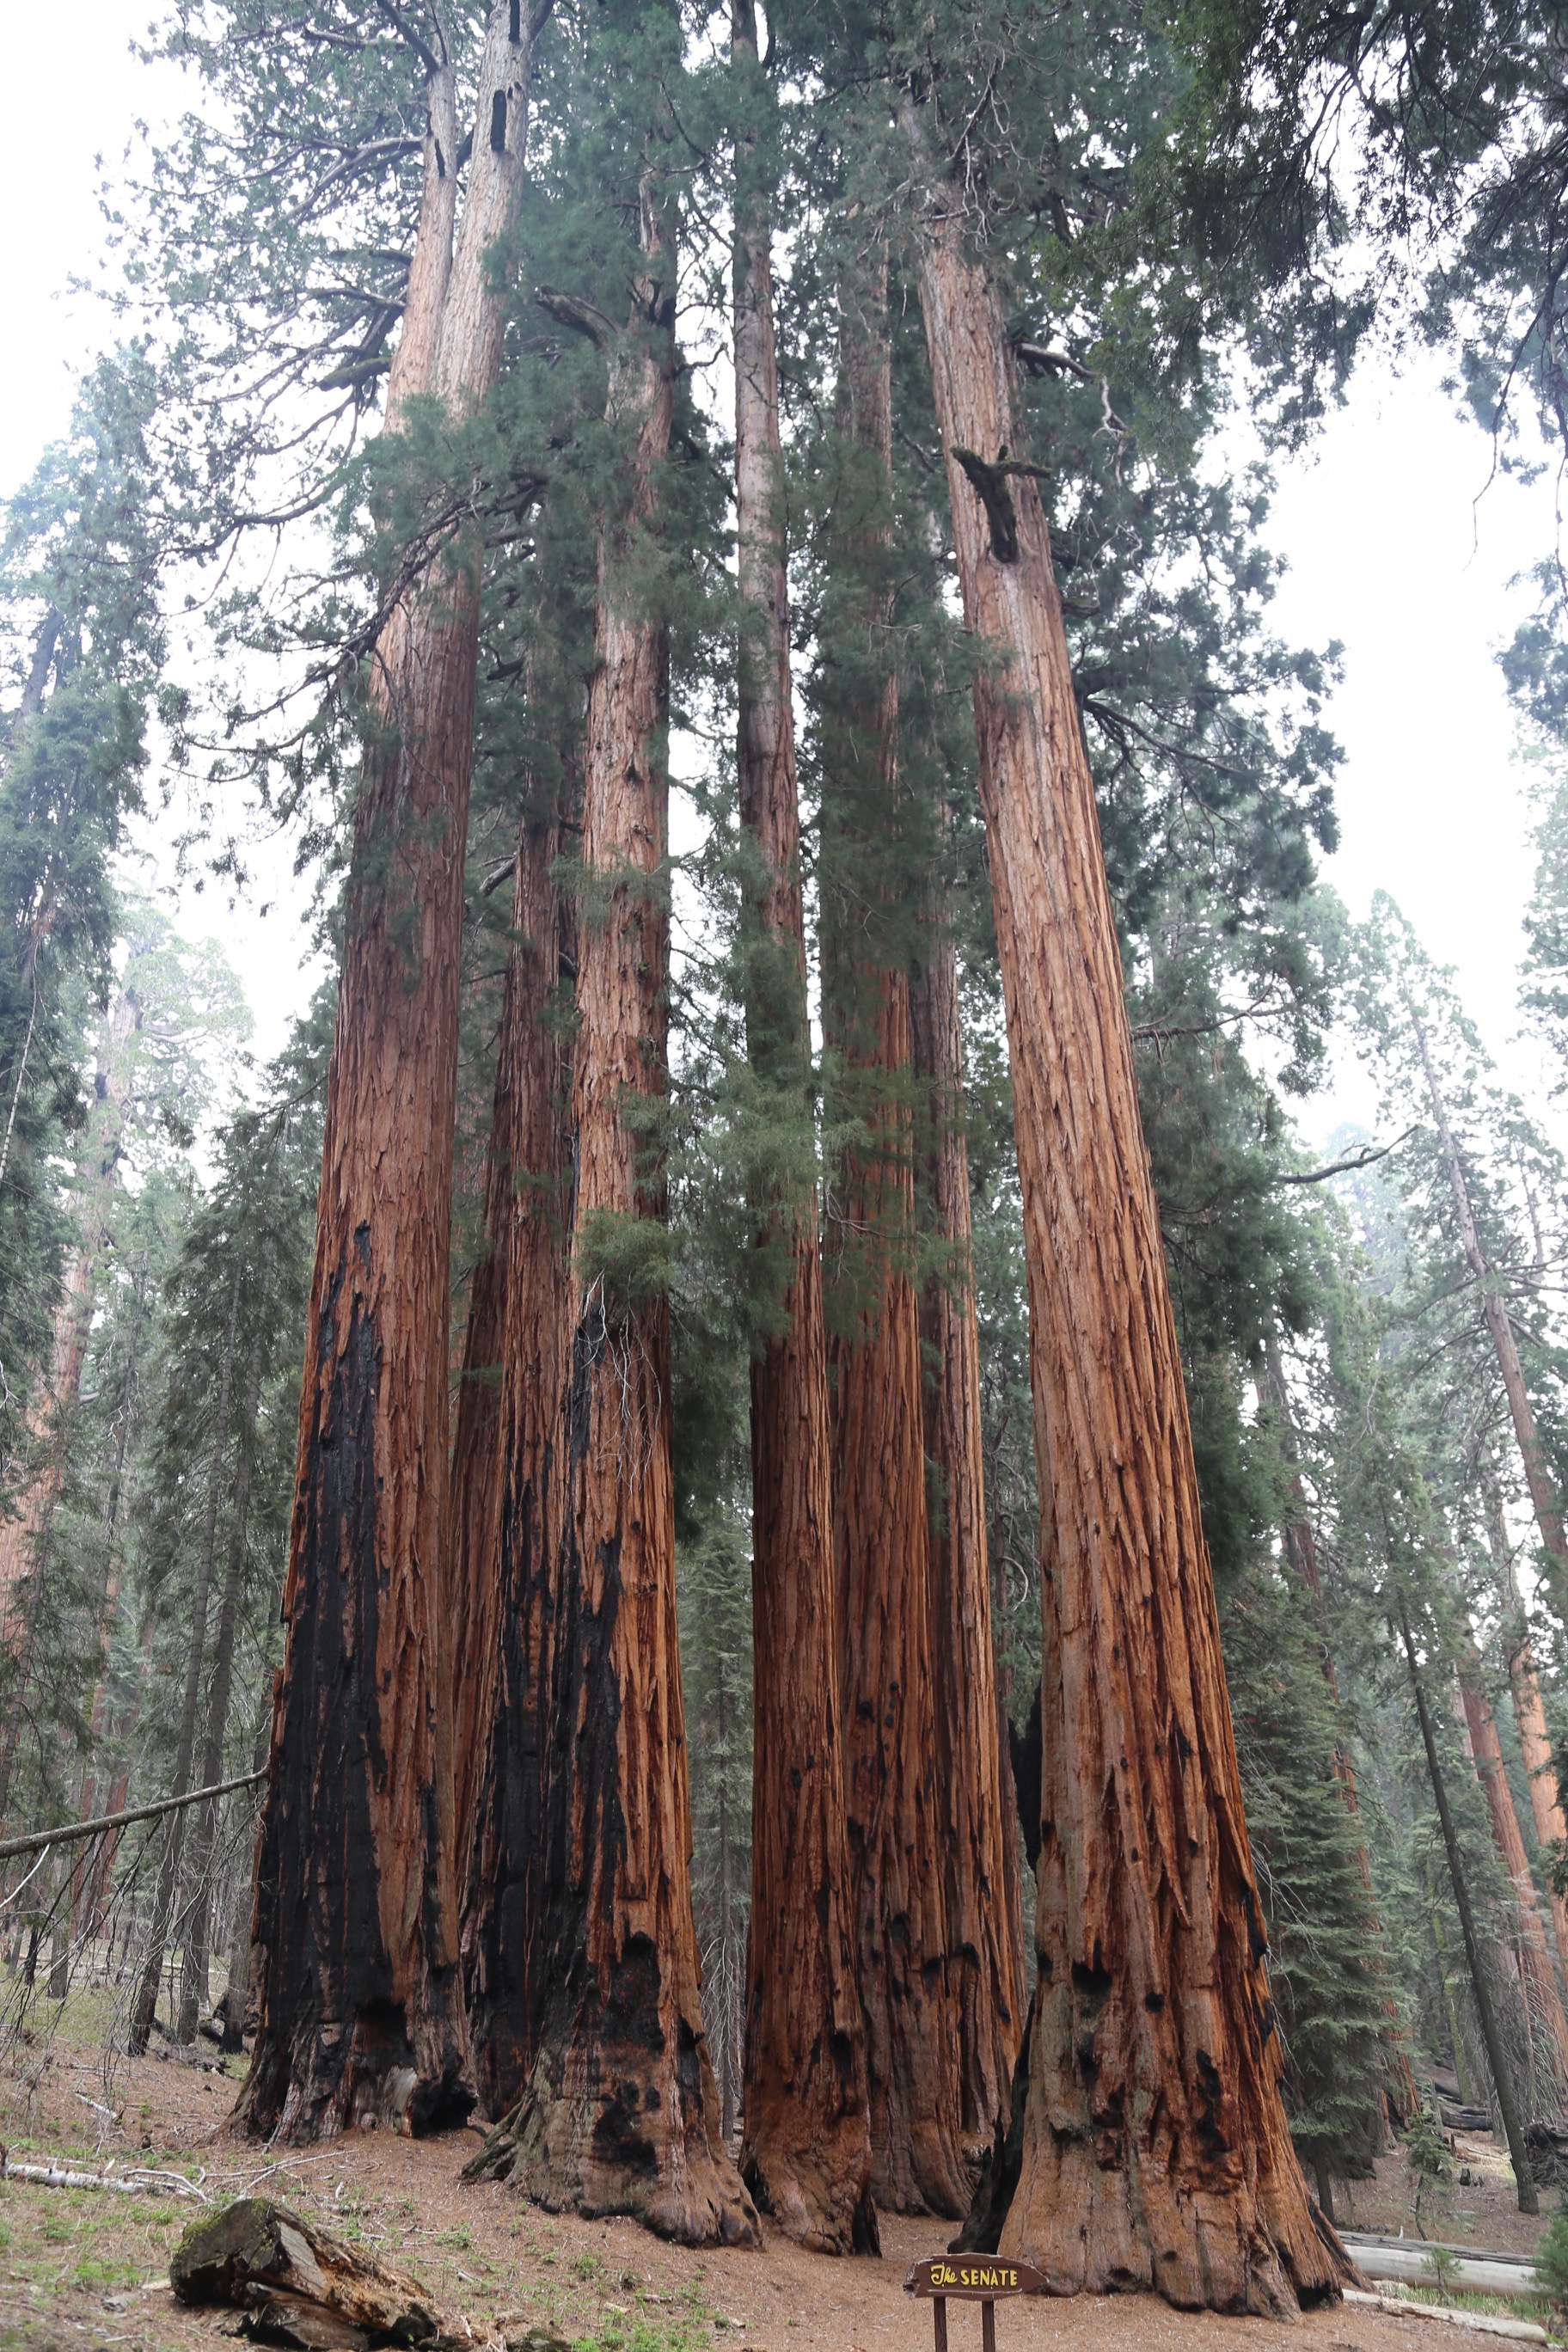 This magnificent grove in Sequoia NP is named The Senate, alluding perhaps to the pace at which the namesake moves?